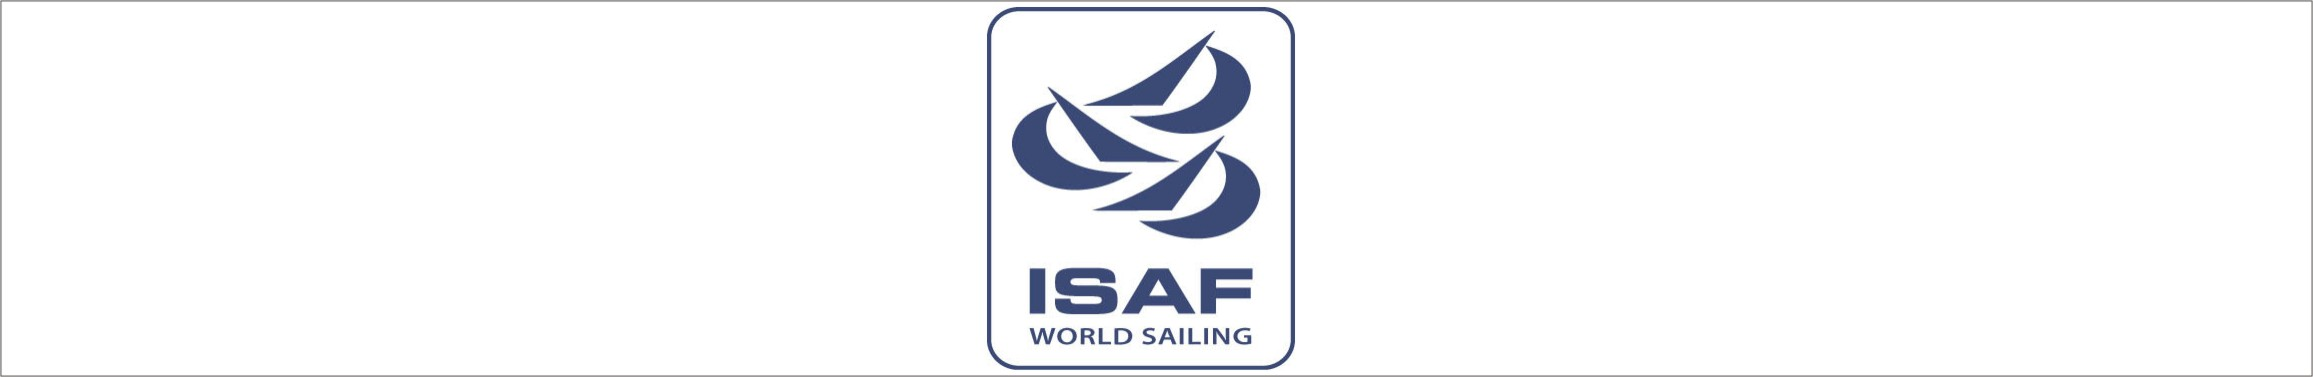 ISAF World Sailing